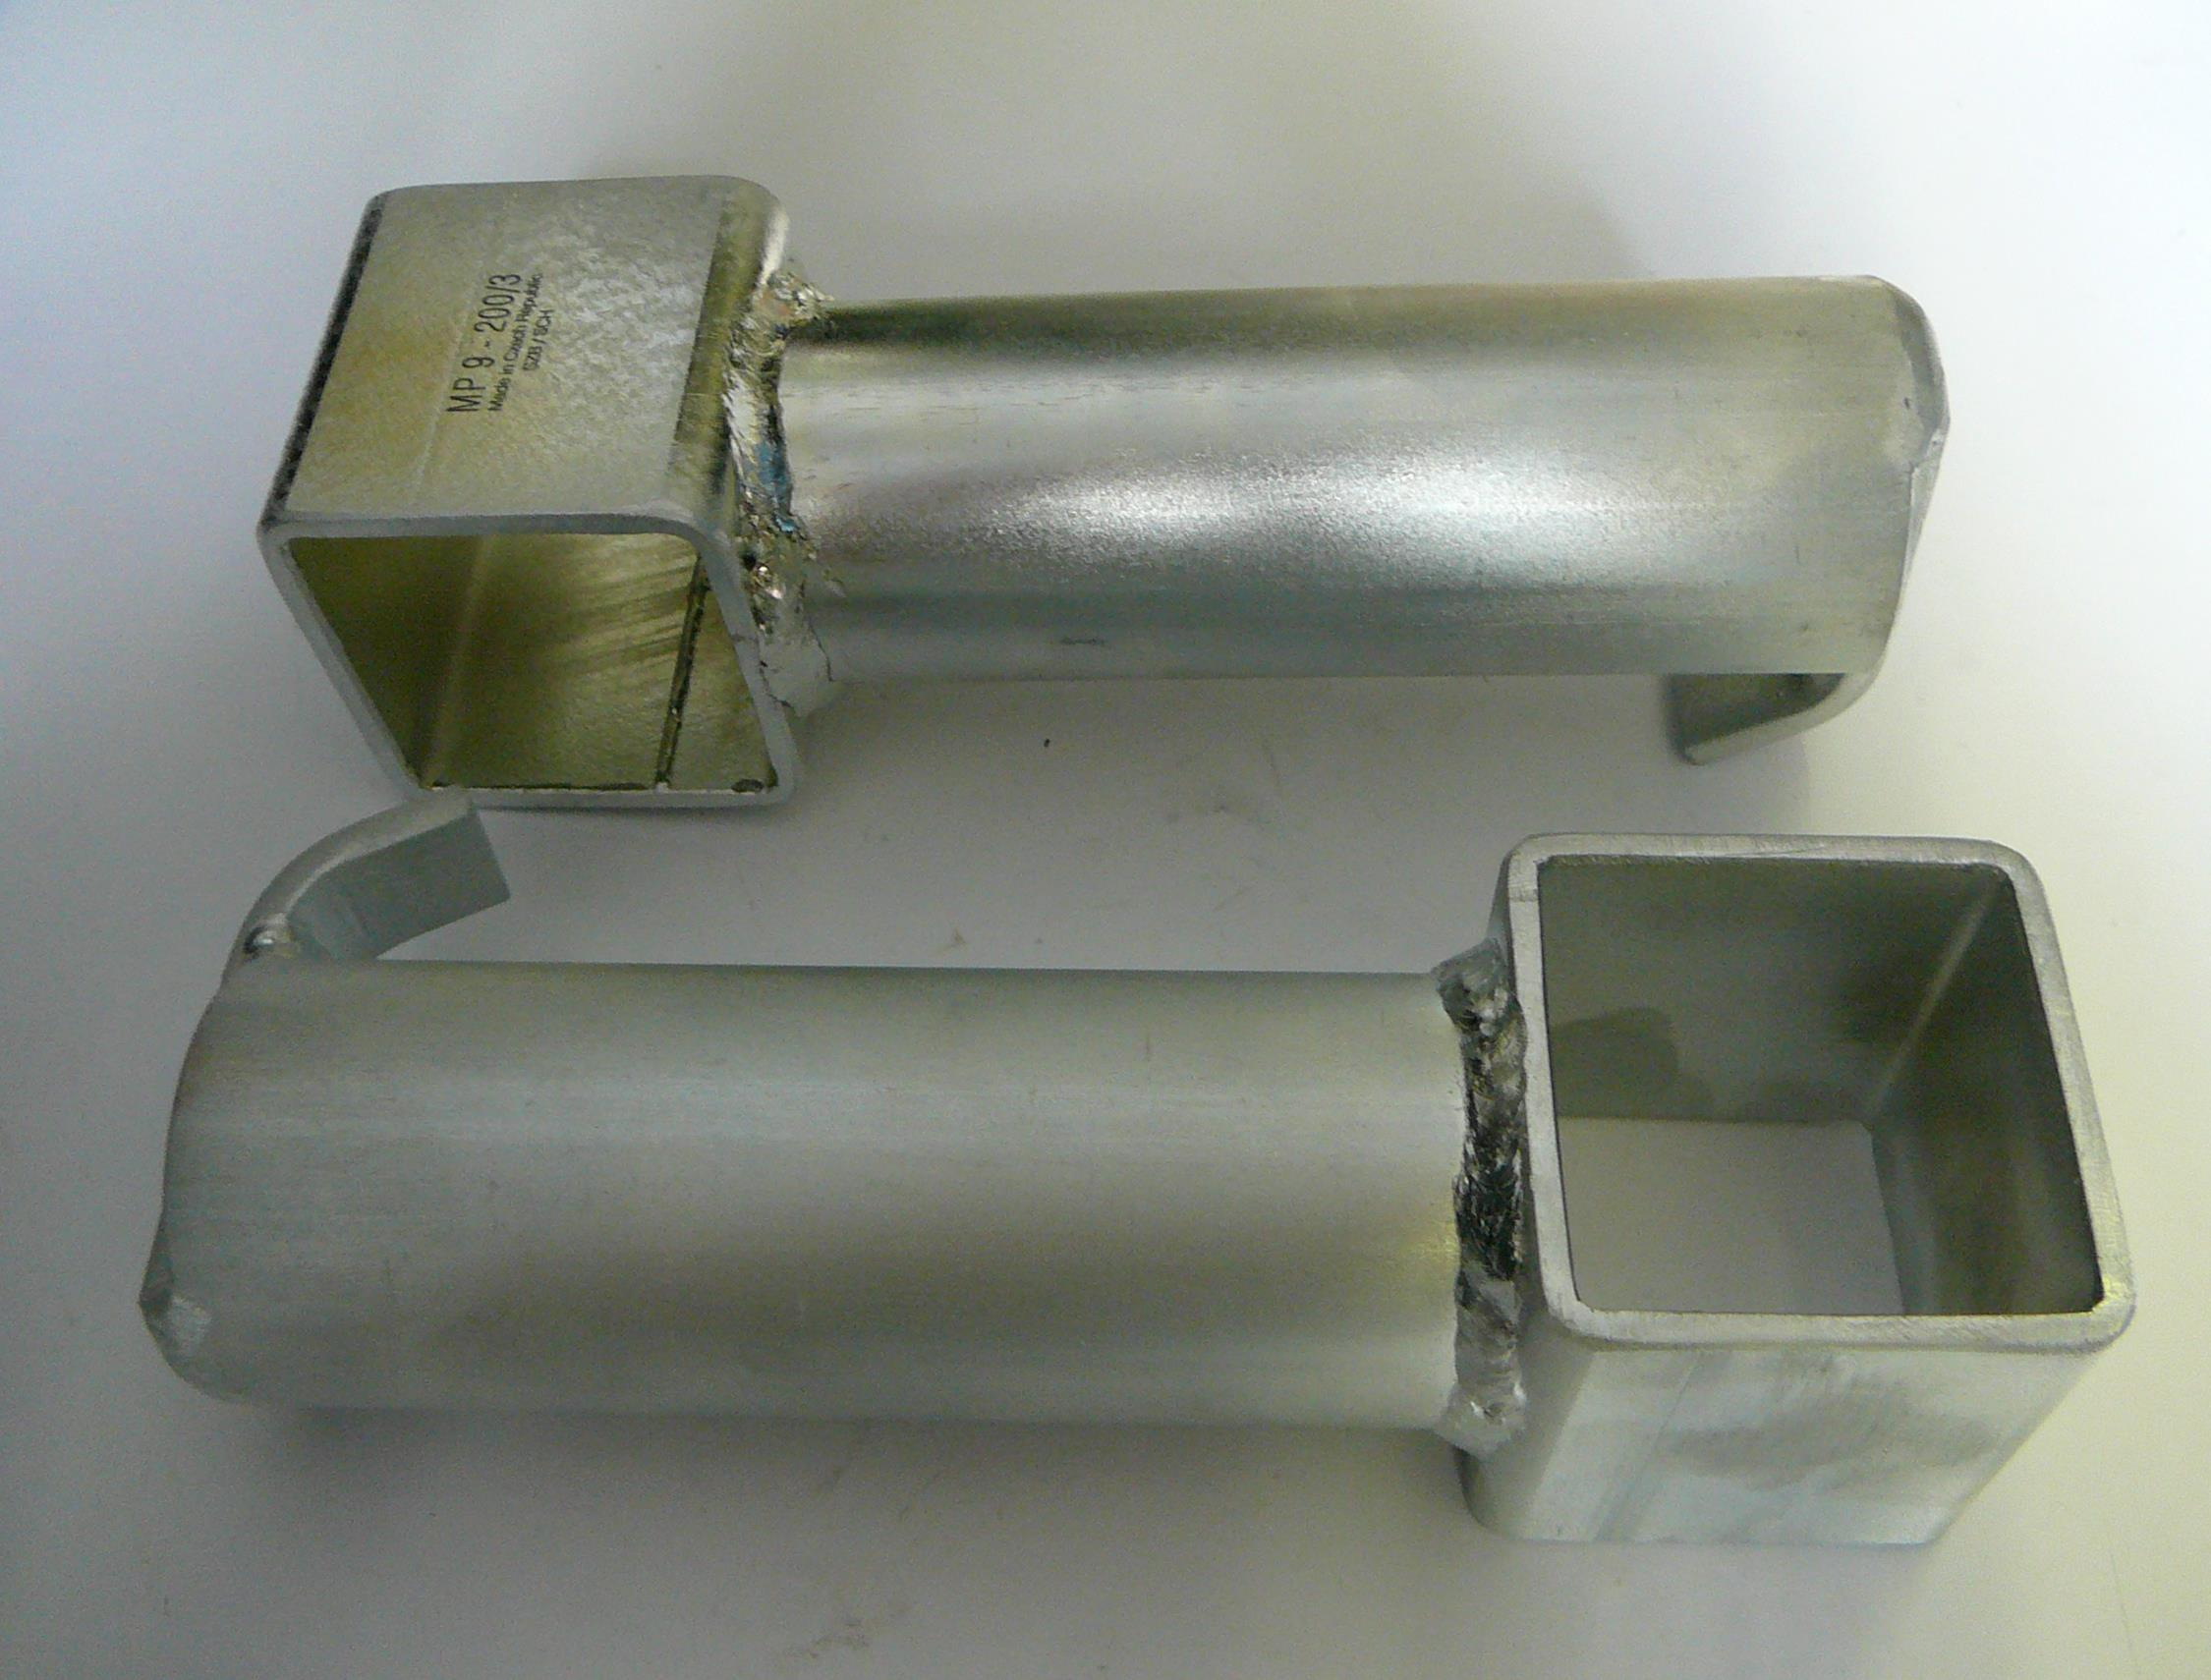 [MP 9-200/3] (10-222A/3) Adaptér SADA2